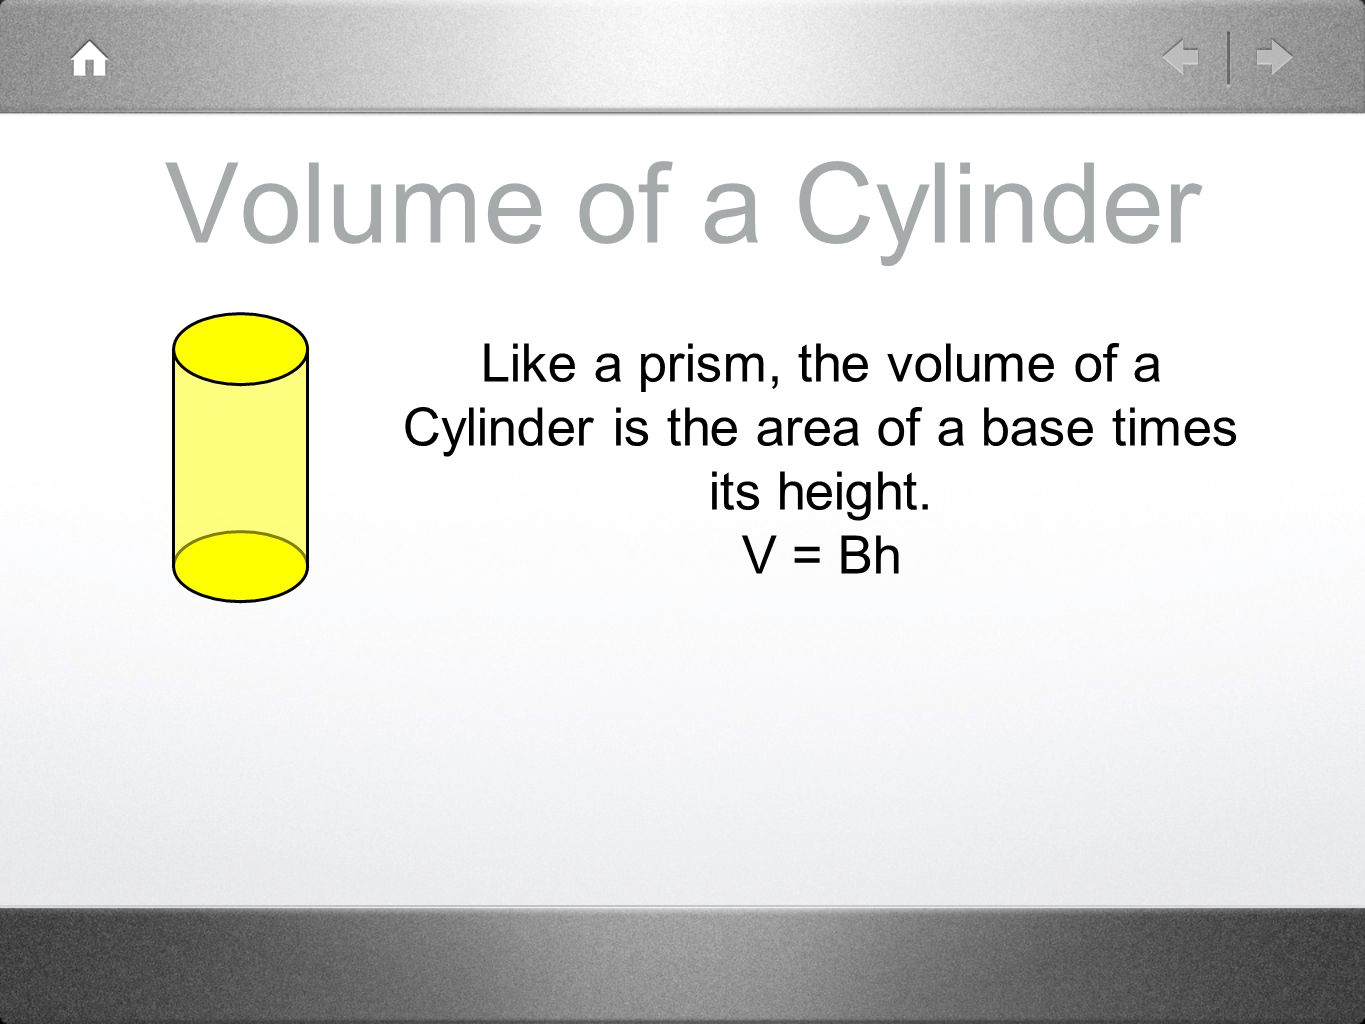 Volume of a Cylinder Like a prism, the volume of a Cylinder is the area of a base times its height.